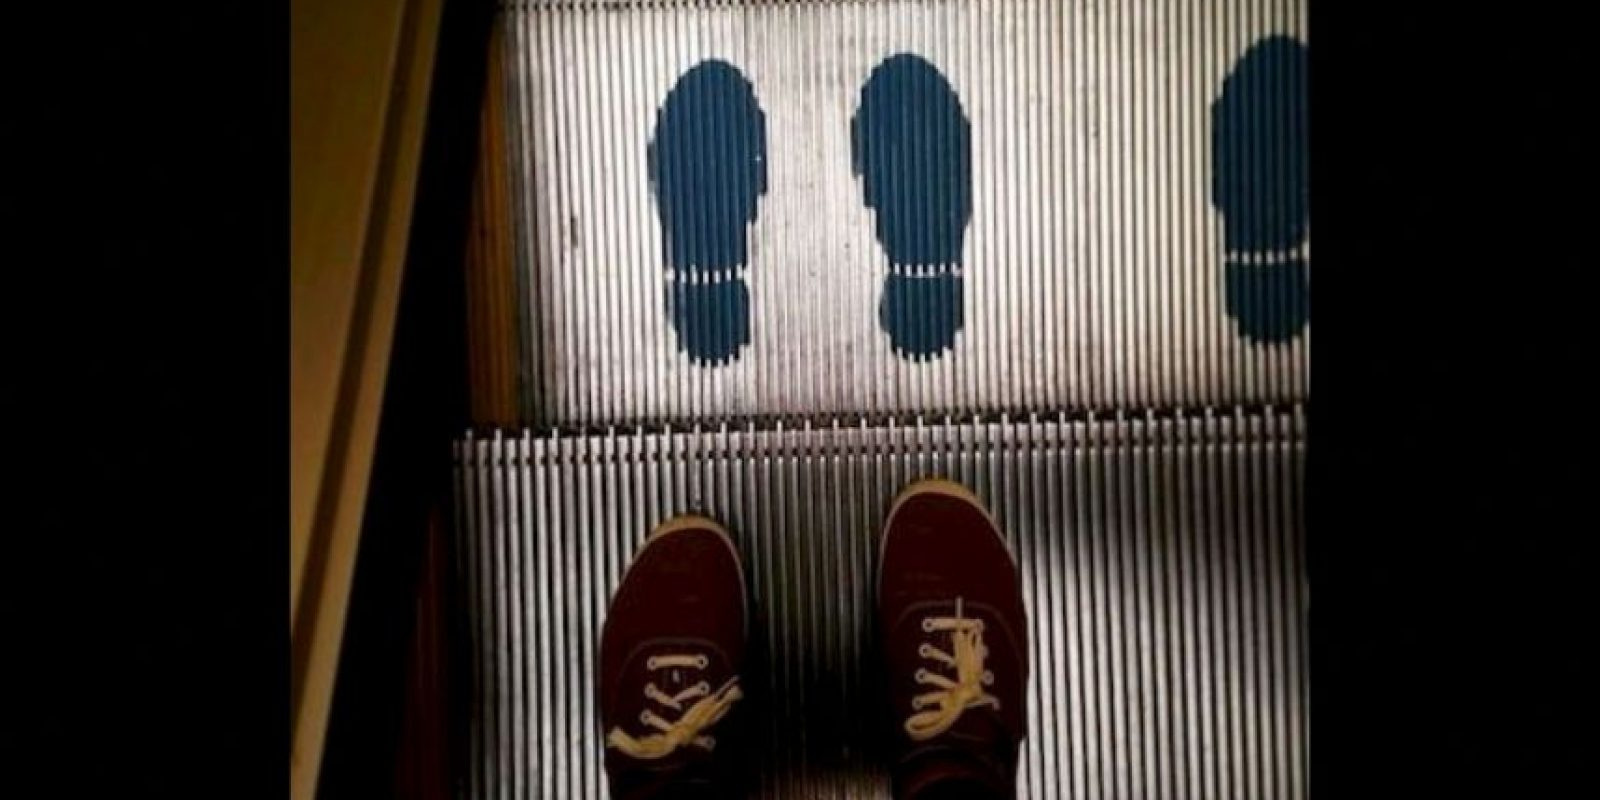 No usar estas escaleras en estado de embriaguez Foto: Instagram.com/explore/tags/escalator/